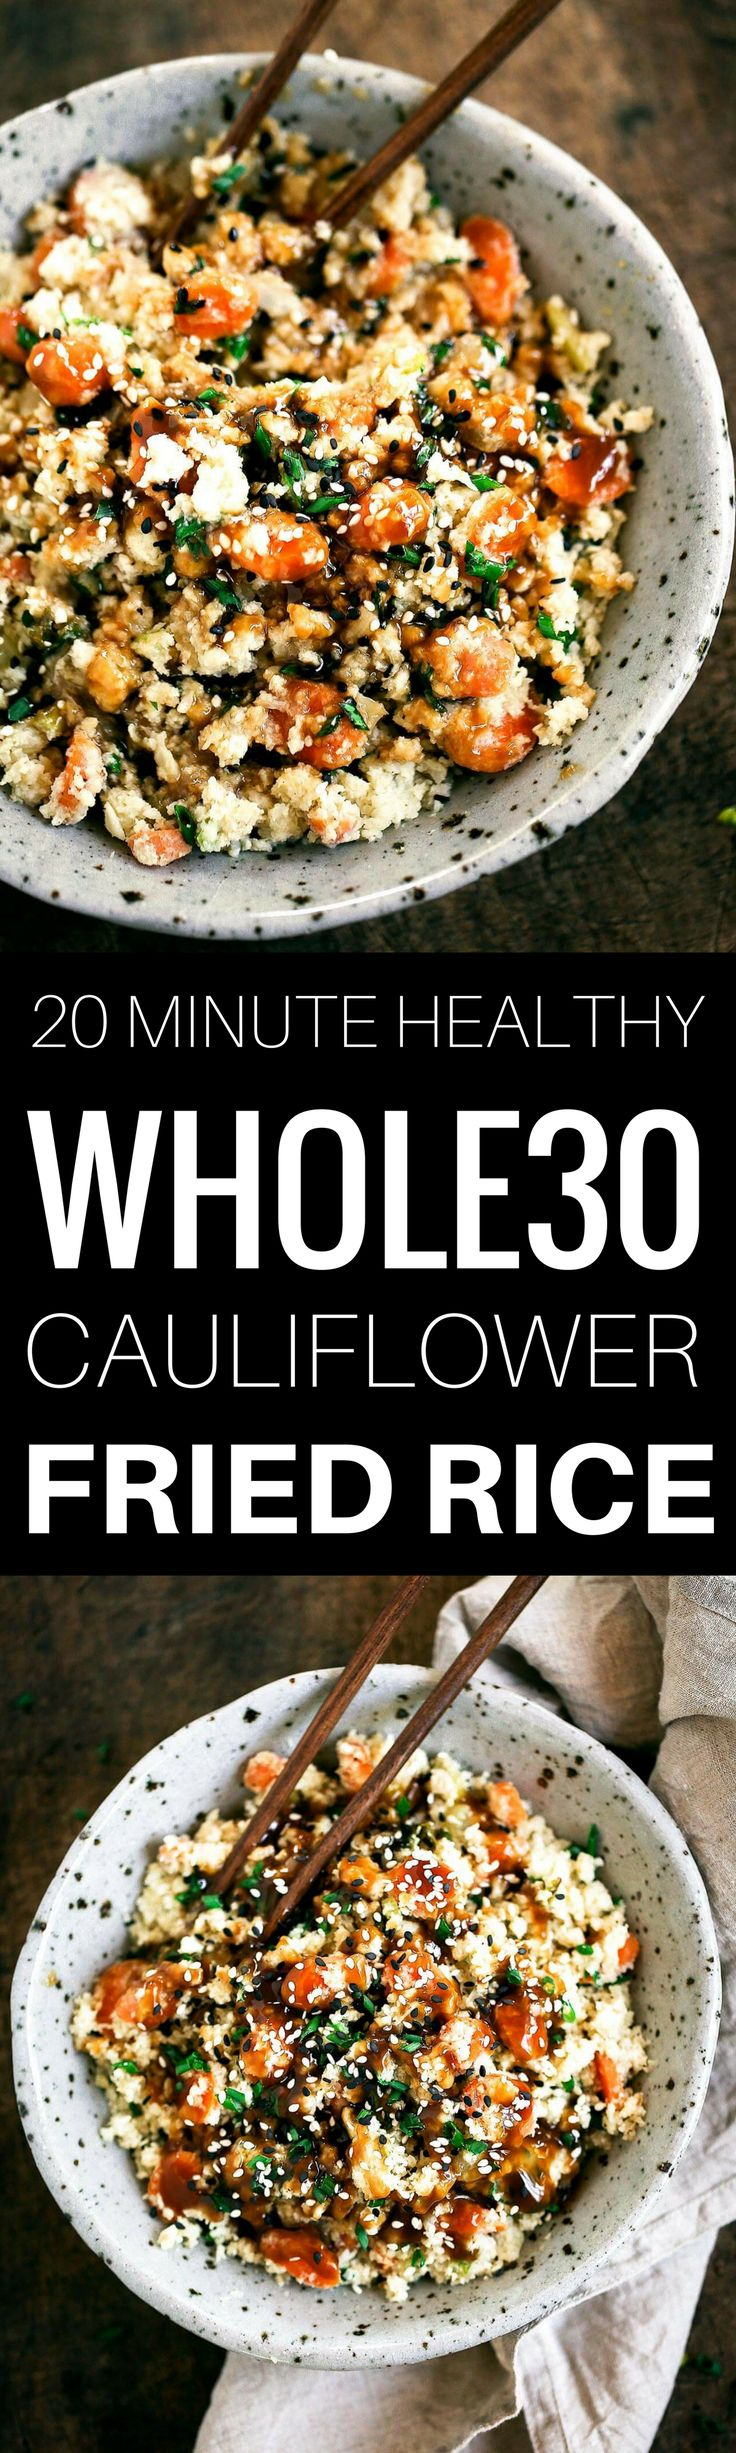 """Easy whole30 and paleo cauliflower fried rice recipe. Ready in 20 minutes. Make ahead and freeze! A healthy and fun family dinner. Topped with a homemade date sweetened gooey silky smooth """"soy sauce"""", green onions, and sesame seeds. whole30 meal plan. Easy whole30 dinner recipes. Easy whole30 dinner recipes. Whole30 recipes. Whole30 lunch. Whole30 meal planning. Whole30 meal prep. Healthy paleo meals. Healthy Whole30 recipes. Easy Whole30 recipes. Easy whole30 dinner recipes. Best..."""